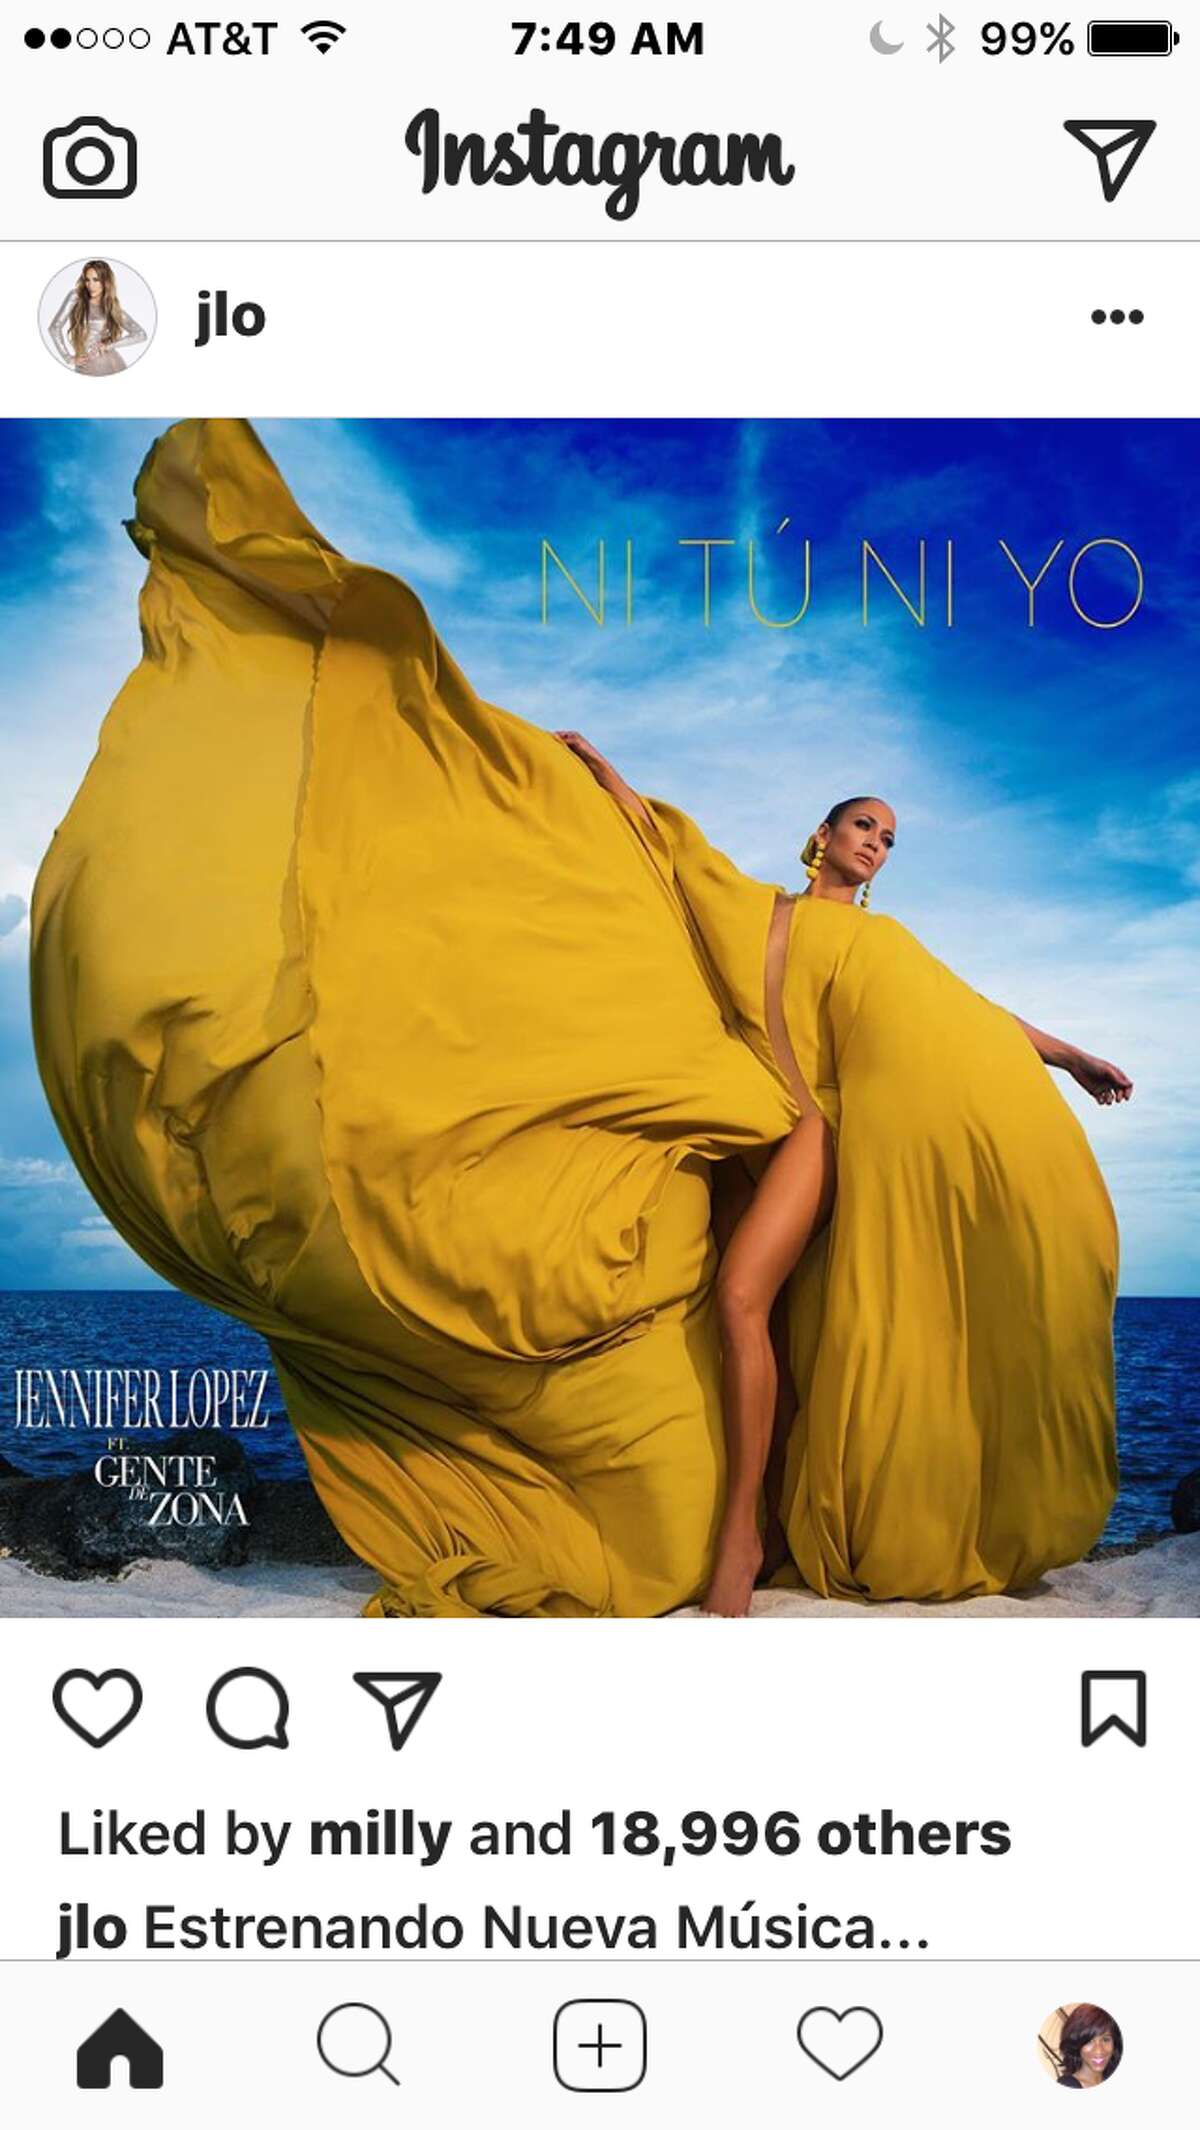 Jennifer Lopez posted this photo on Instagram taken from the photo shoot for her new single.